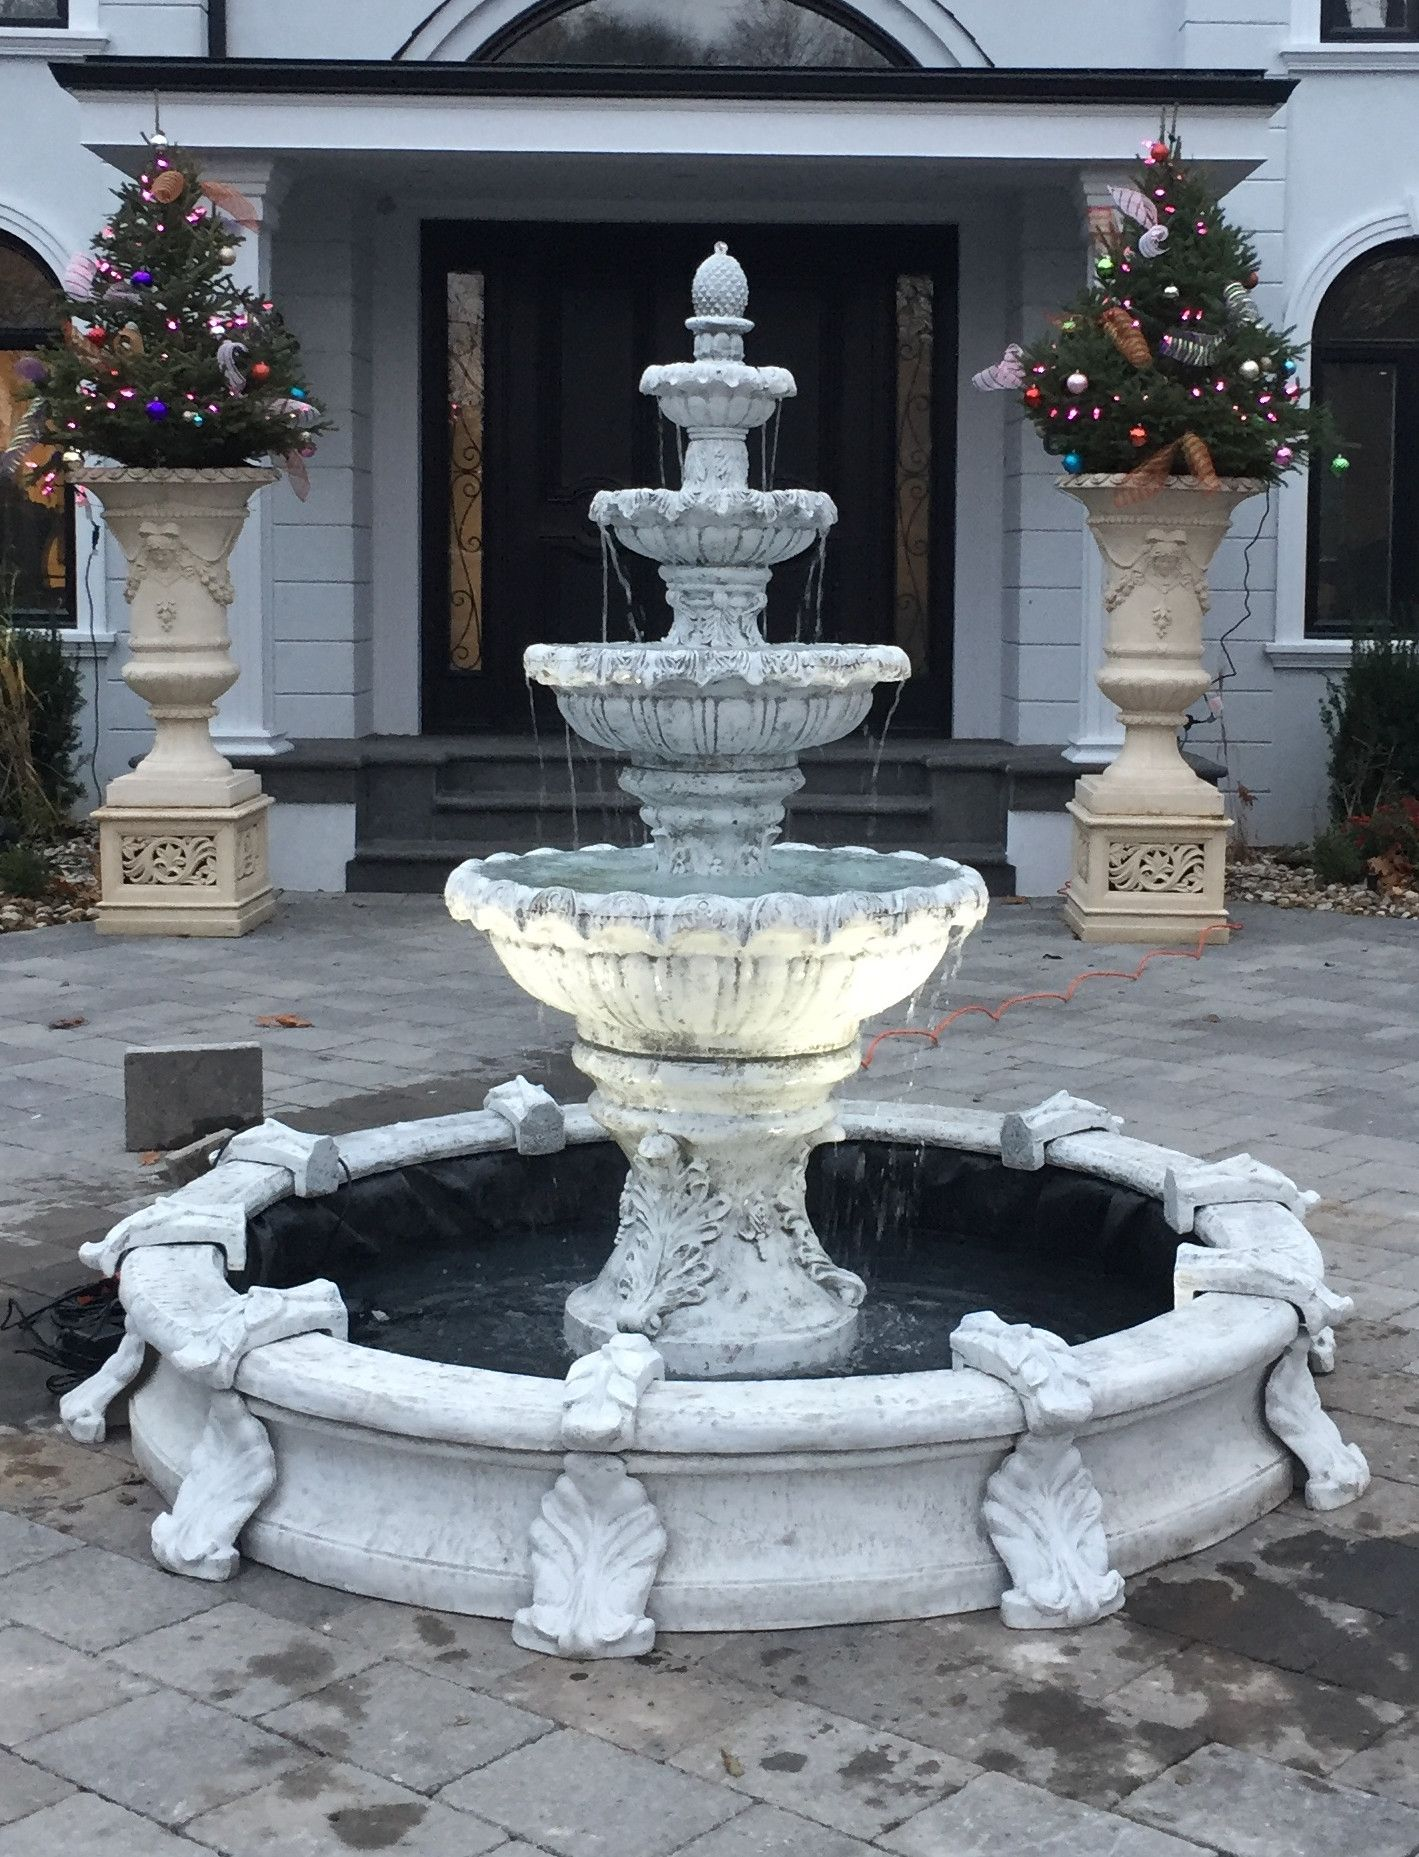 4 Tier Fleur Fountain In Basin Garden Water Fountains Yard Water Fountains Water Fountain Design